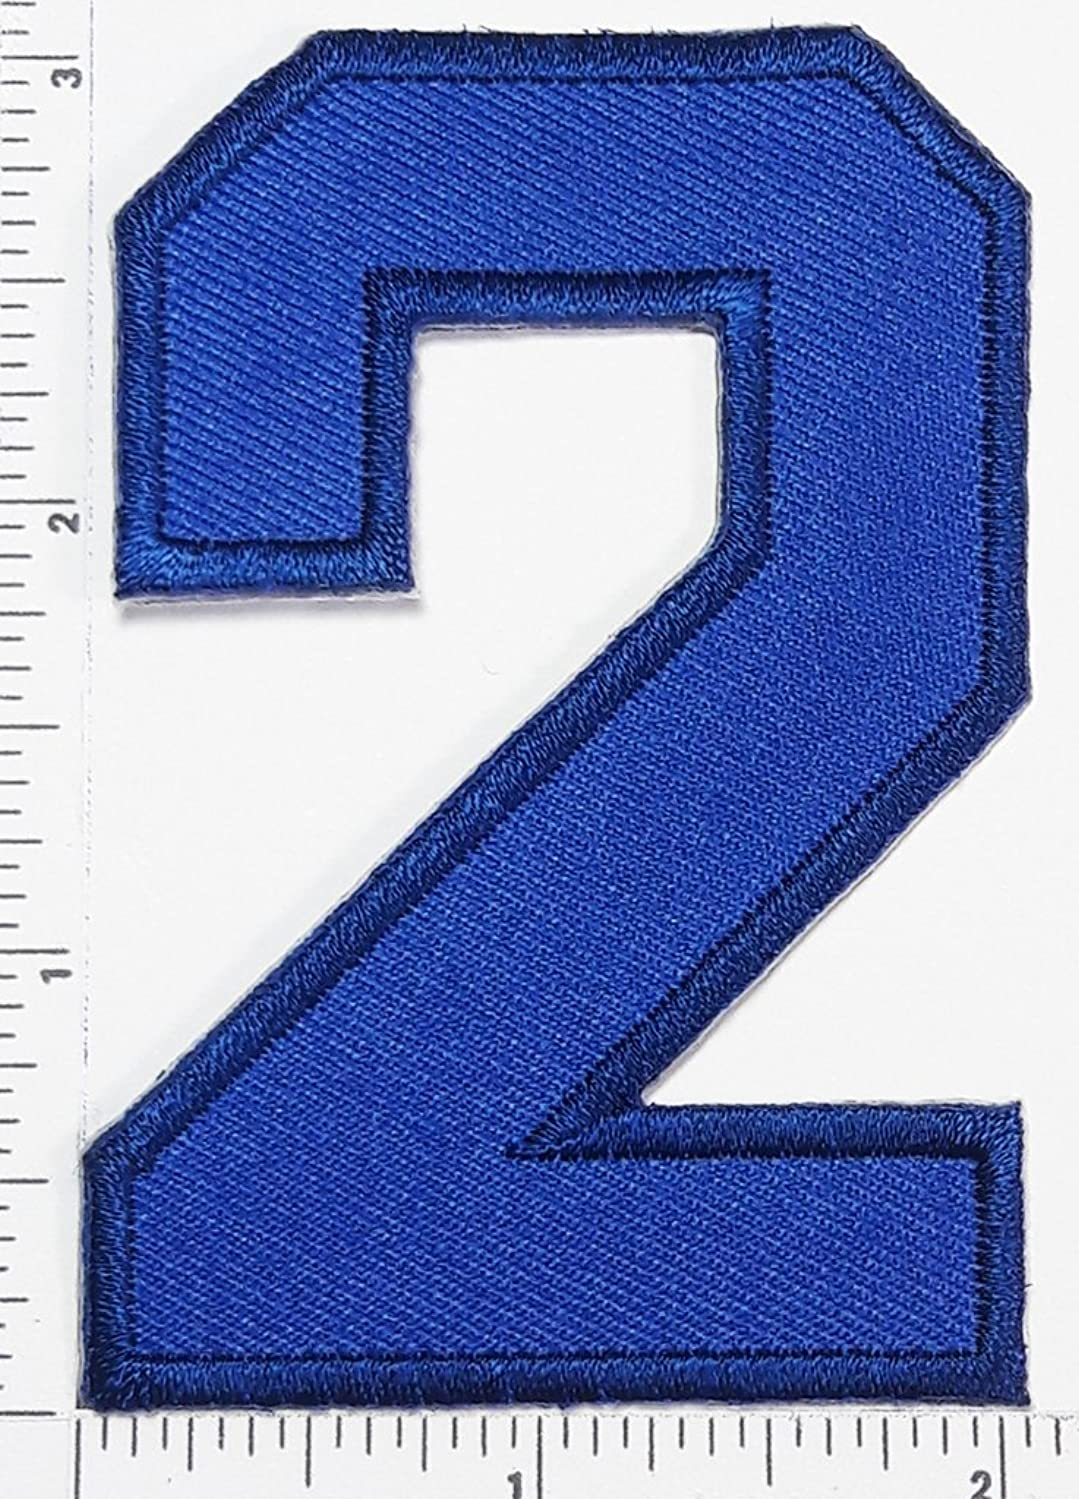 Blue Number 2 Patch Number Two Counting Logo Letter School Symbol Counting Logo Jacket T-Shirt Patch Iron on Patch